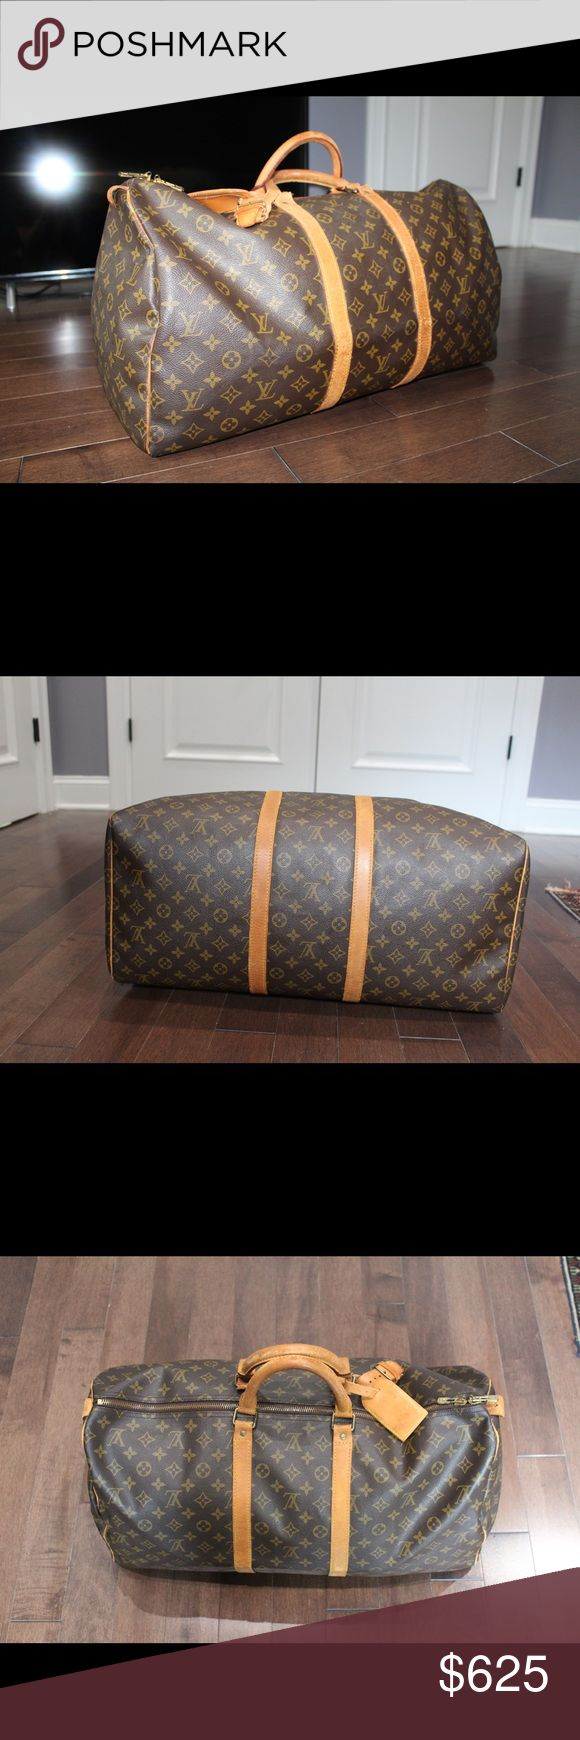 Louis Vuitton keepall 55 It's a vintage keepall in good condition, has minimal marks, wear in the handles. as seen in the pictures, as you can see not bothersome. Interior is very clean. Perfect for carry on/traveling. Does not come with dust bag. Louis Vuitton Bags Travel Bags